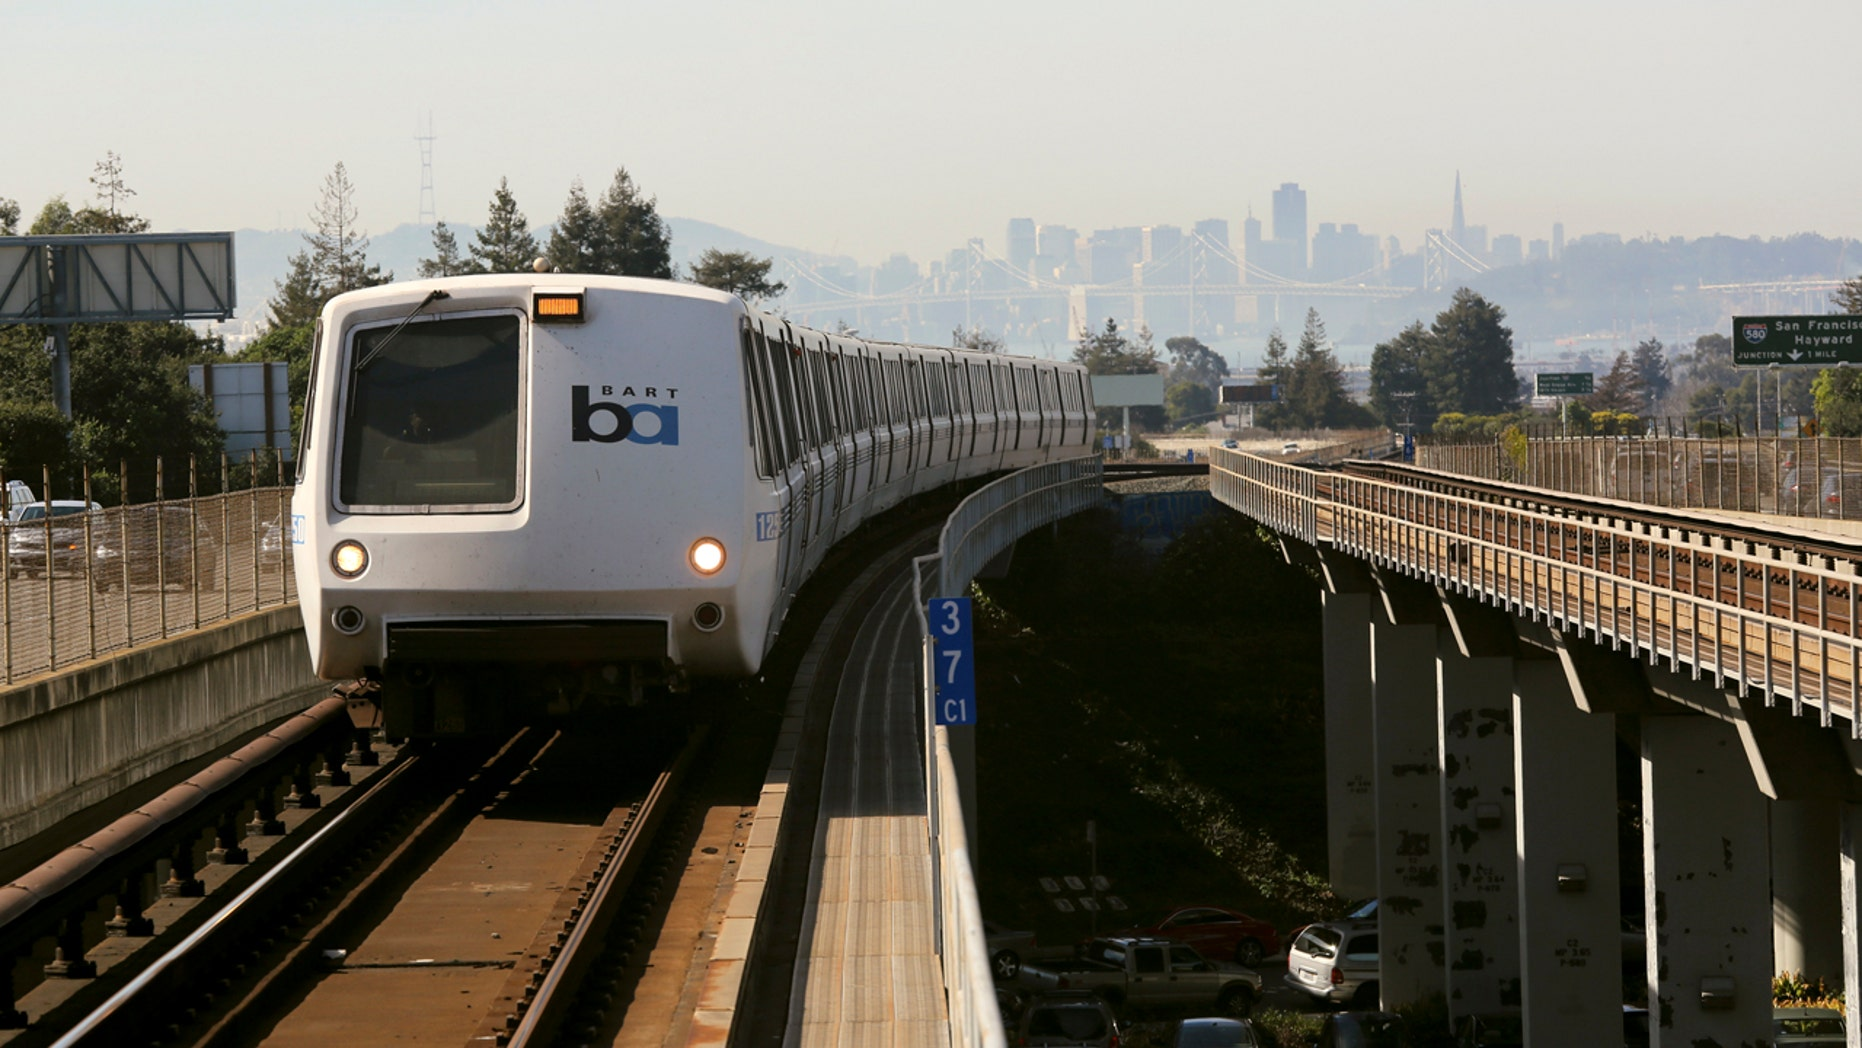 A Bay Area Rapid Transit (BART) train enters the platform area at the Rockridge station in Oakland, California February 12, 2015.